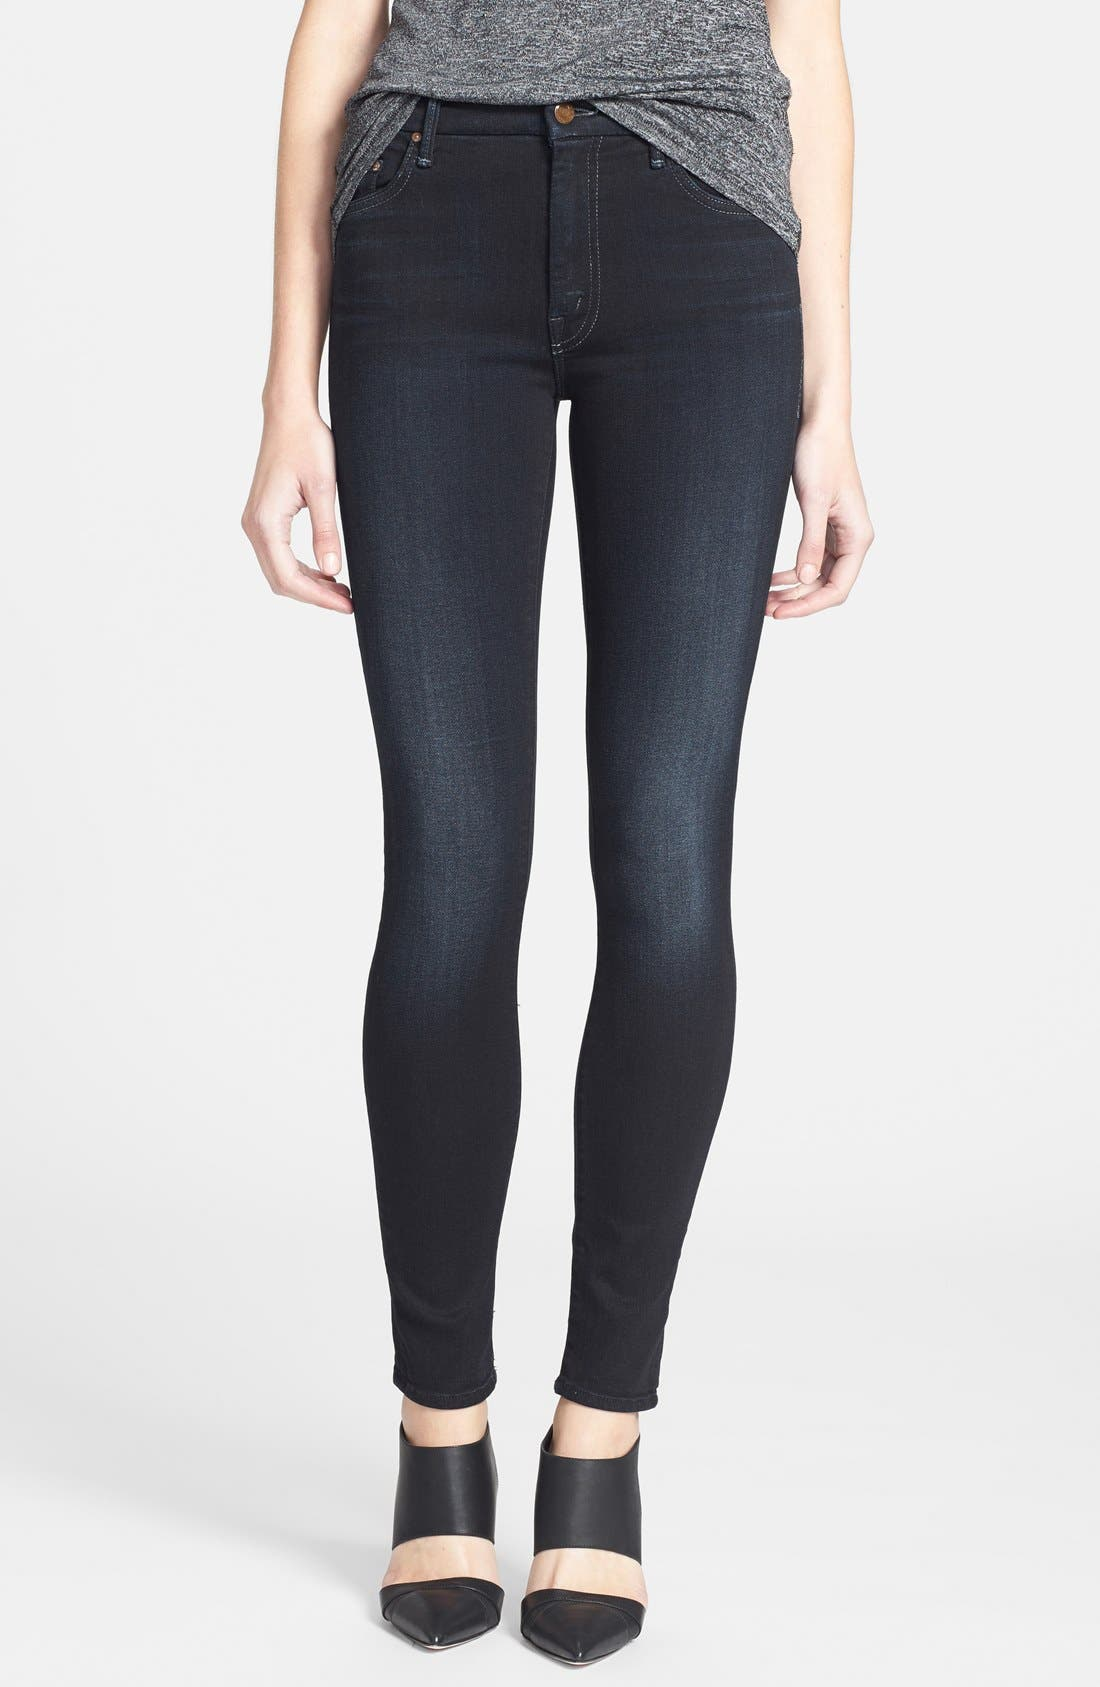 'The Looker' High Rise Skinny Jeans,                             Main thumbnail 1, color,                             Coffee Tea Or Me